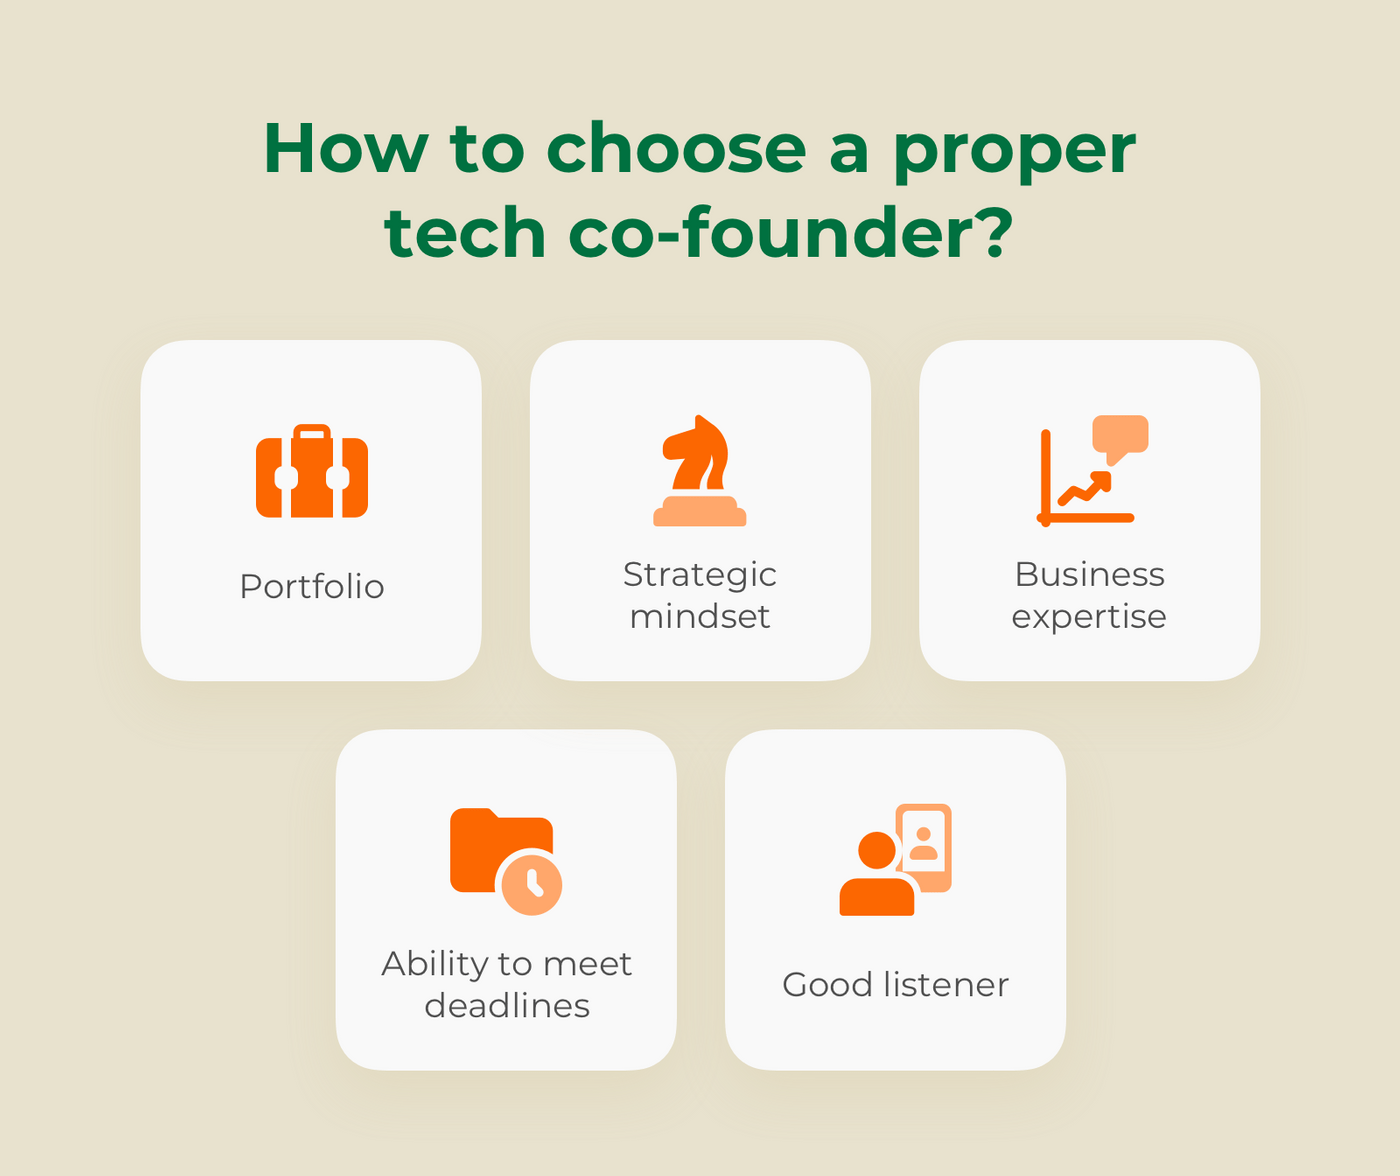 Tech co-founders' skills